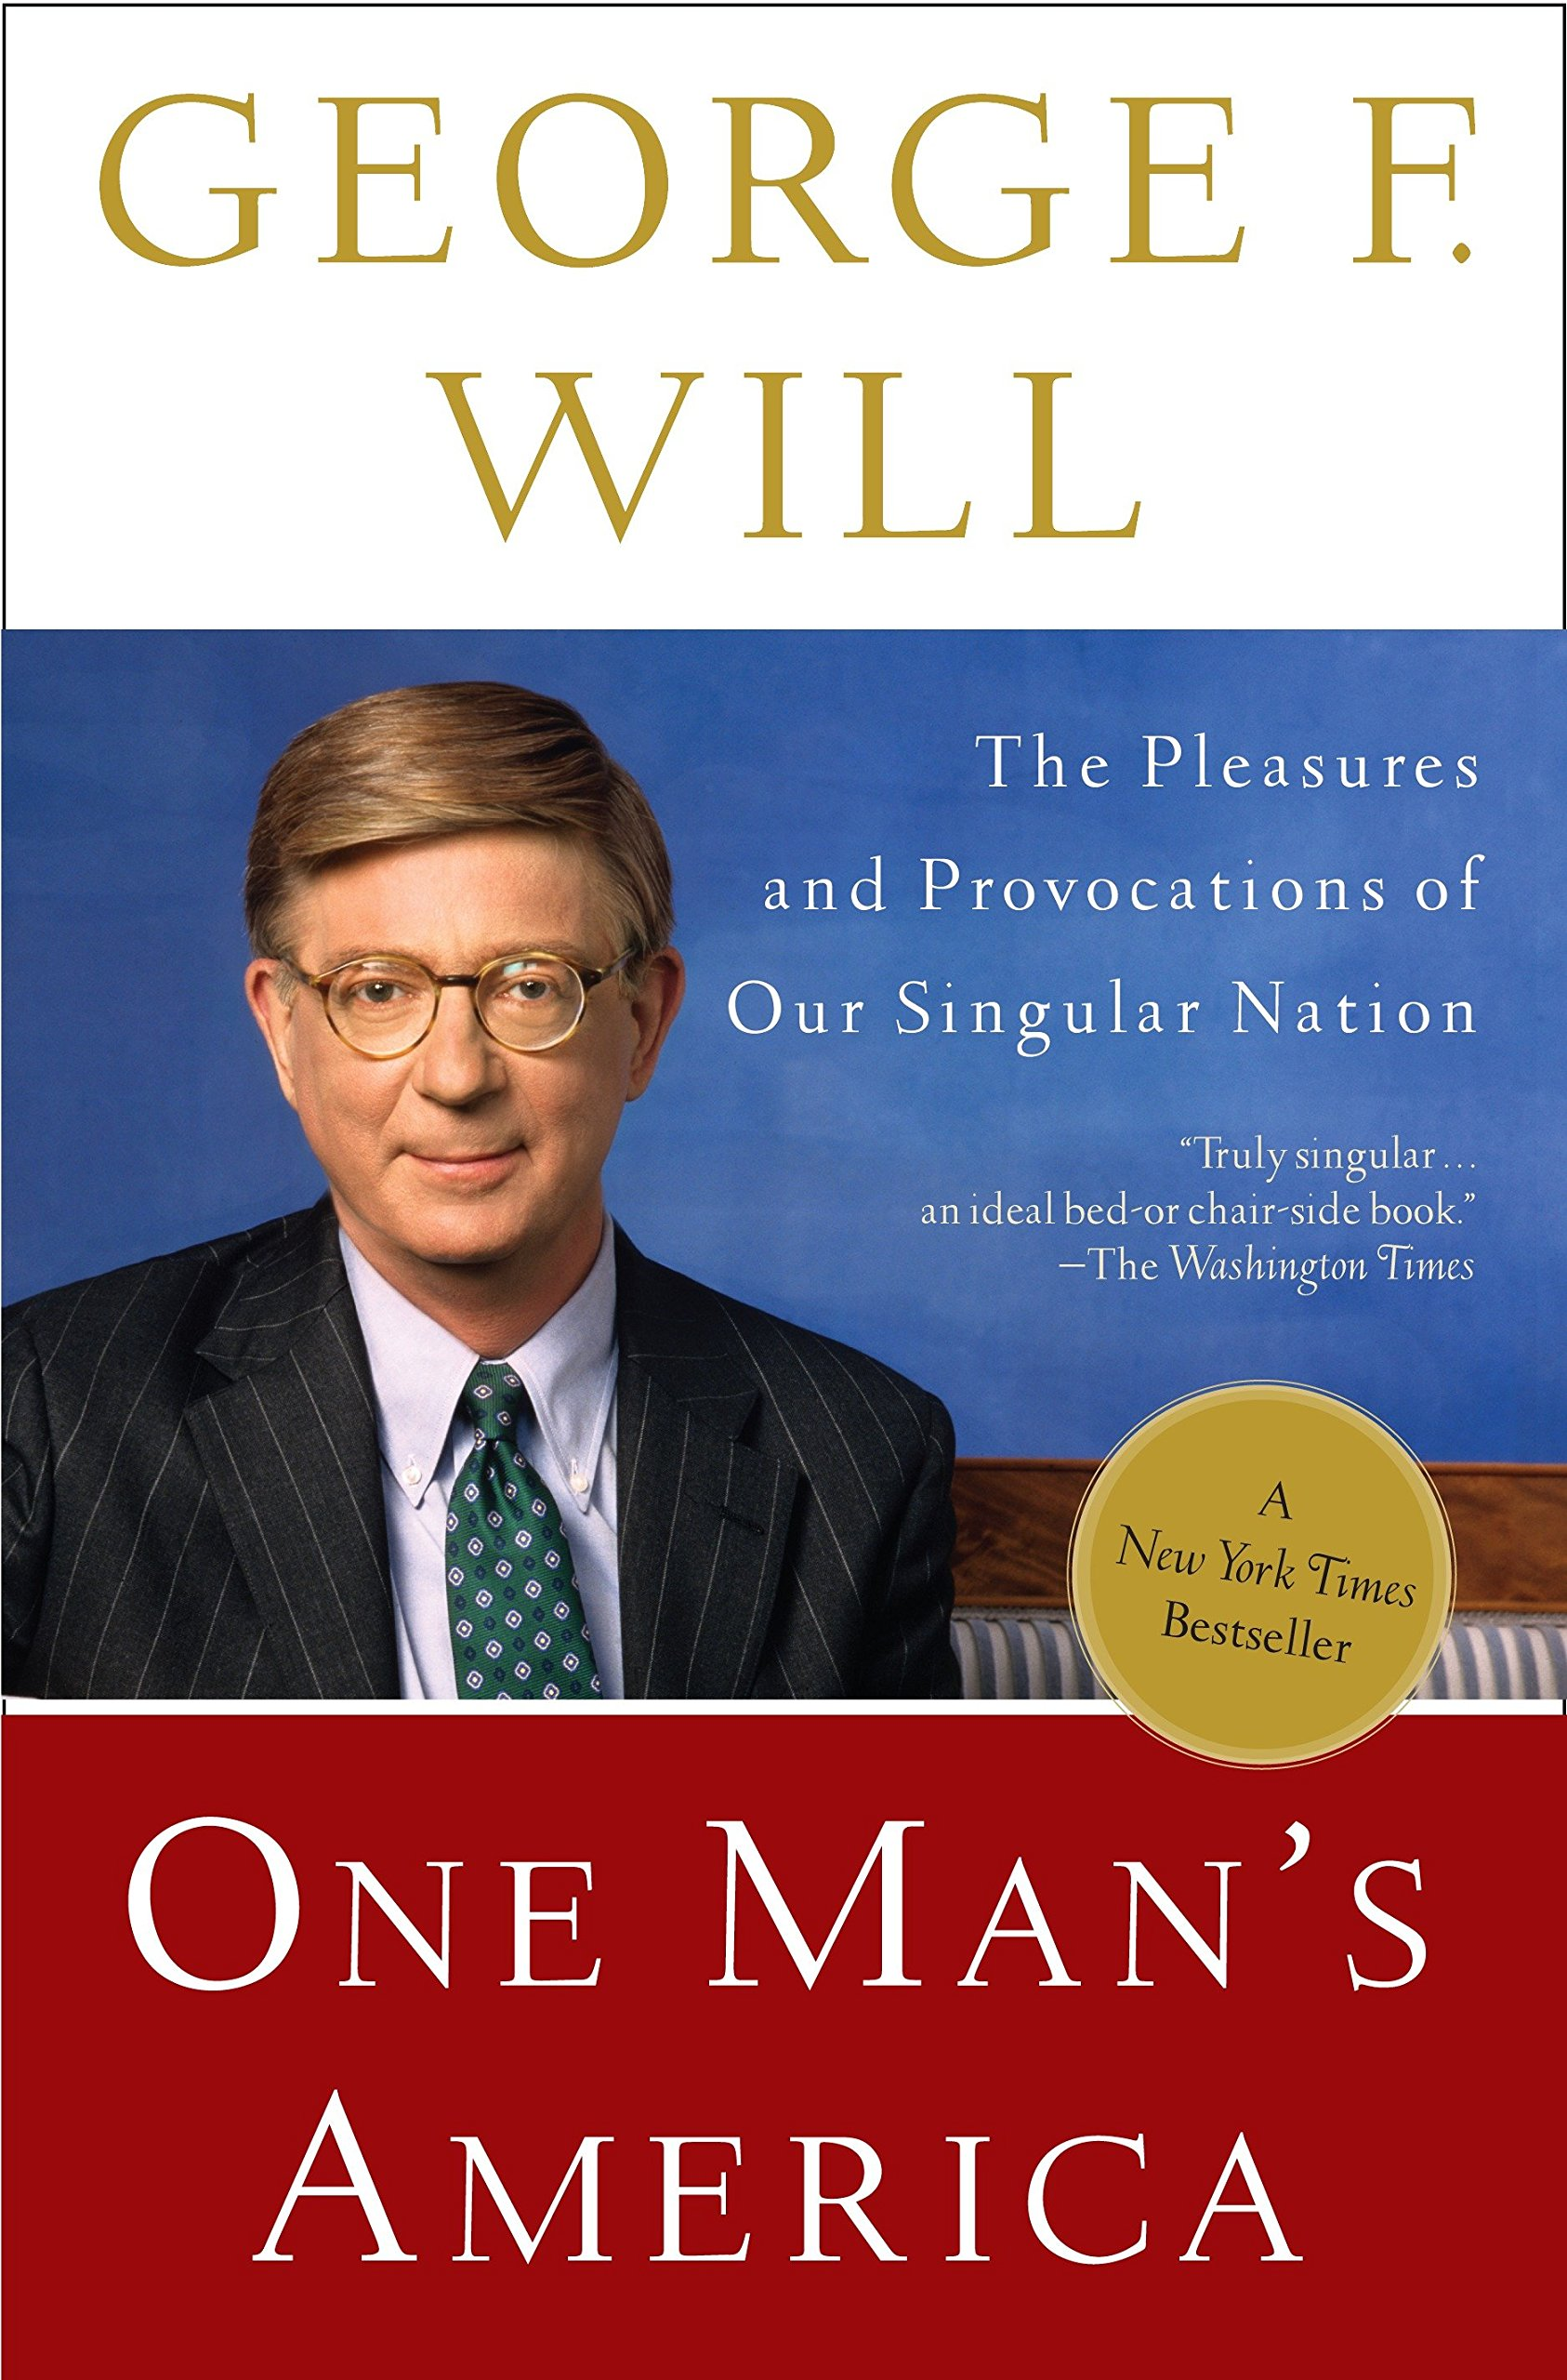 One Man's America: The Pleasures and Provocations of Our Singular Nation ebook